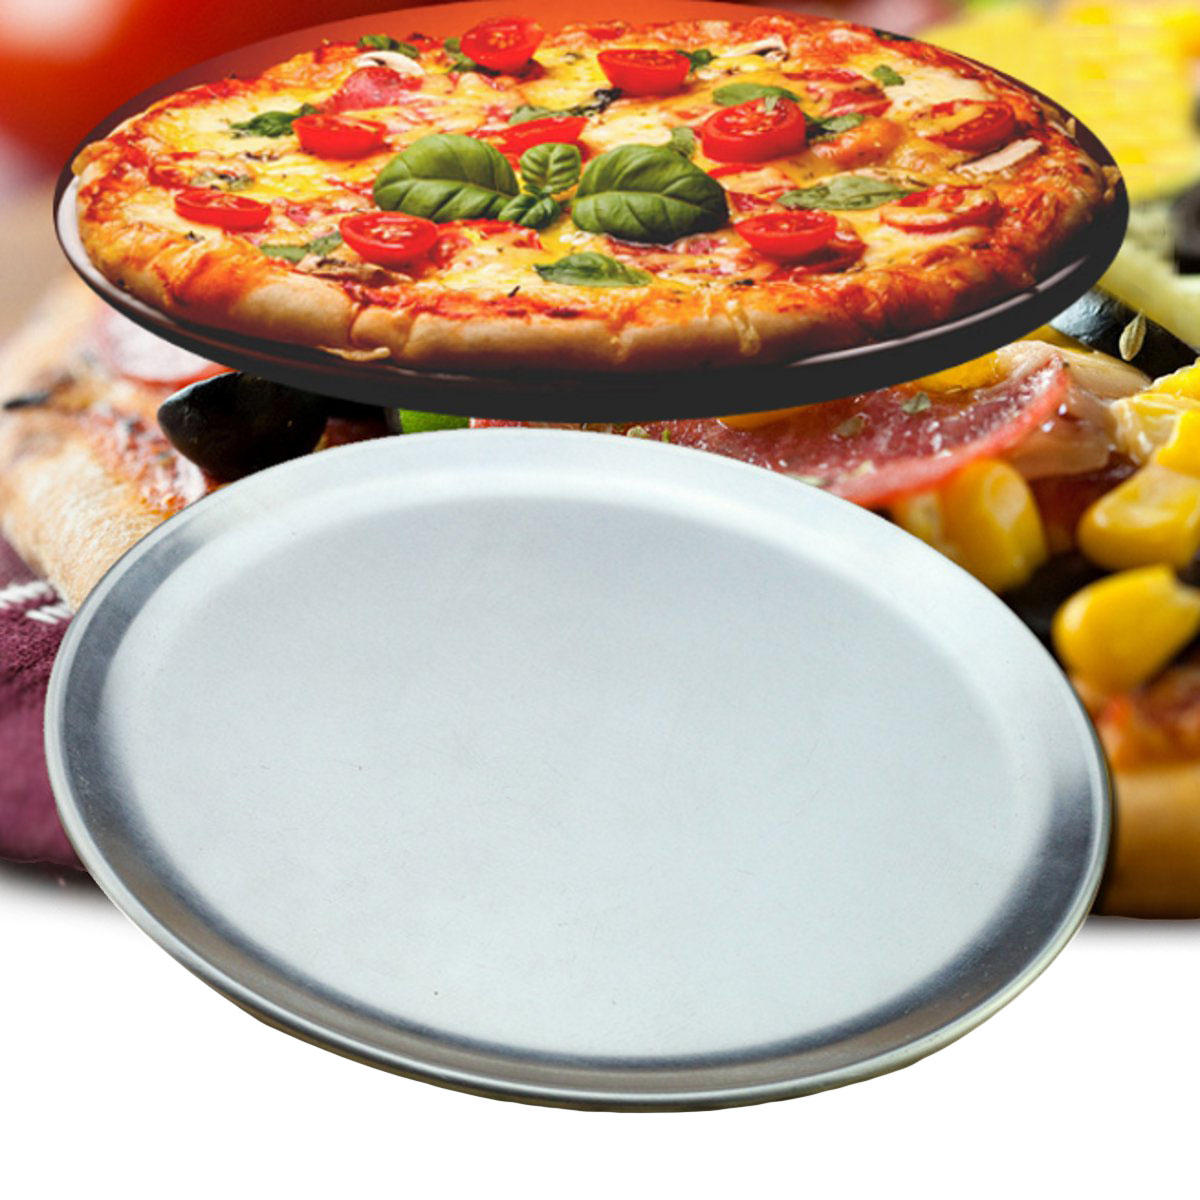 Aluminium Runde Pizza Tray Platte Backen Pan Küche Kochgeschirr 10 ...